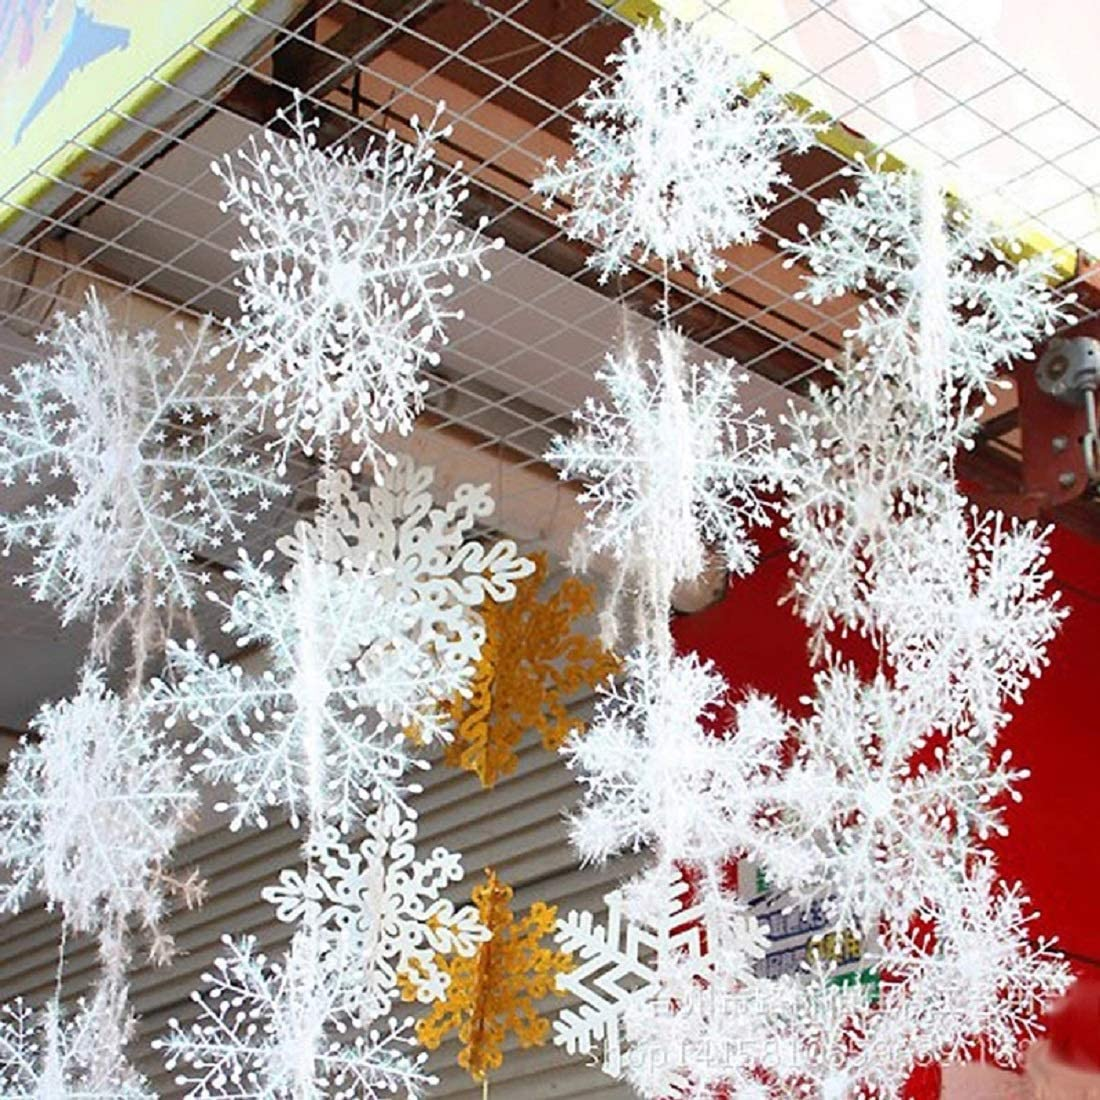 ANIUHL 3D White Snowflake Hanging Decorations 14in 11in 7in Large Plastic Christmas Snowflake for Holiday New Year Party Home Decoration, 24 Pieces